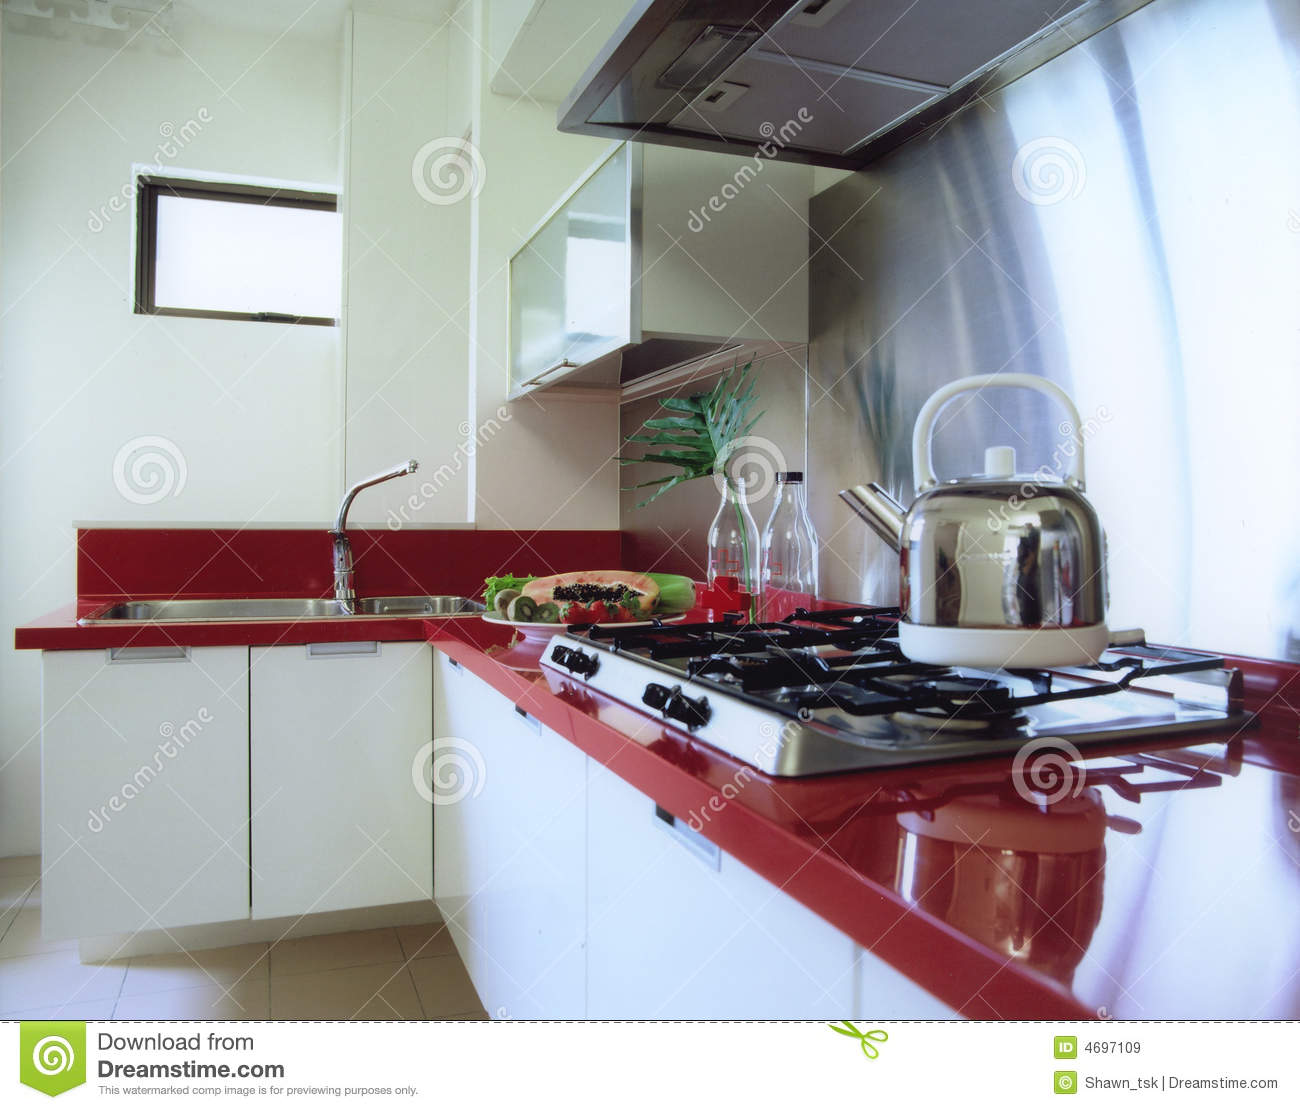 Dry And Wet Kitchen Design Photos: Dry Kitchen Stock Image. Image Of Ceiling, Cabinets